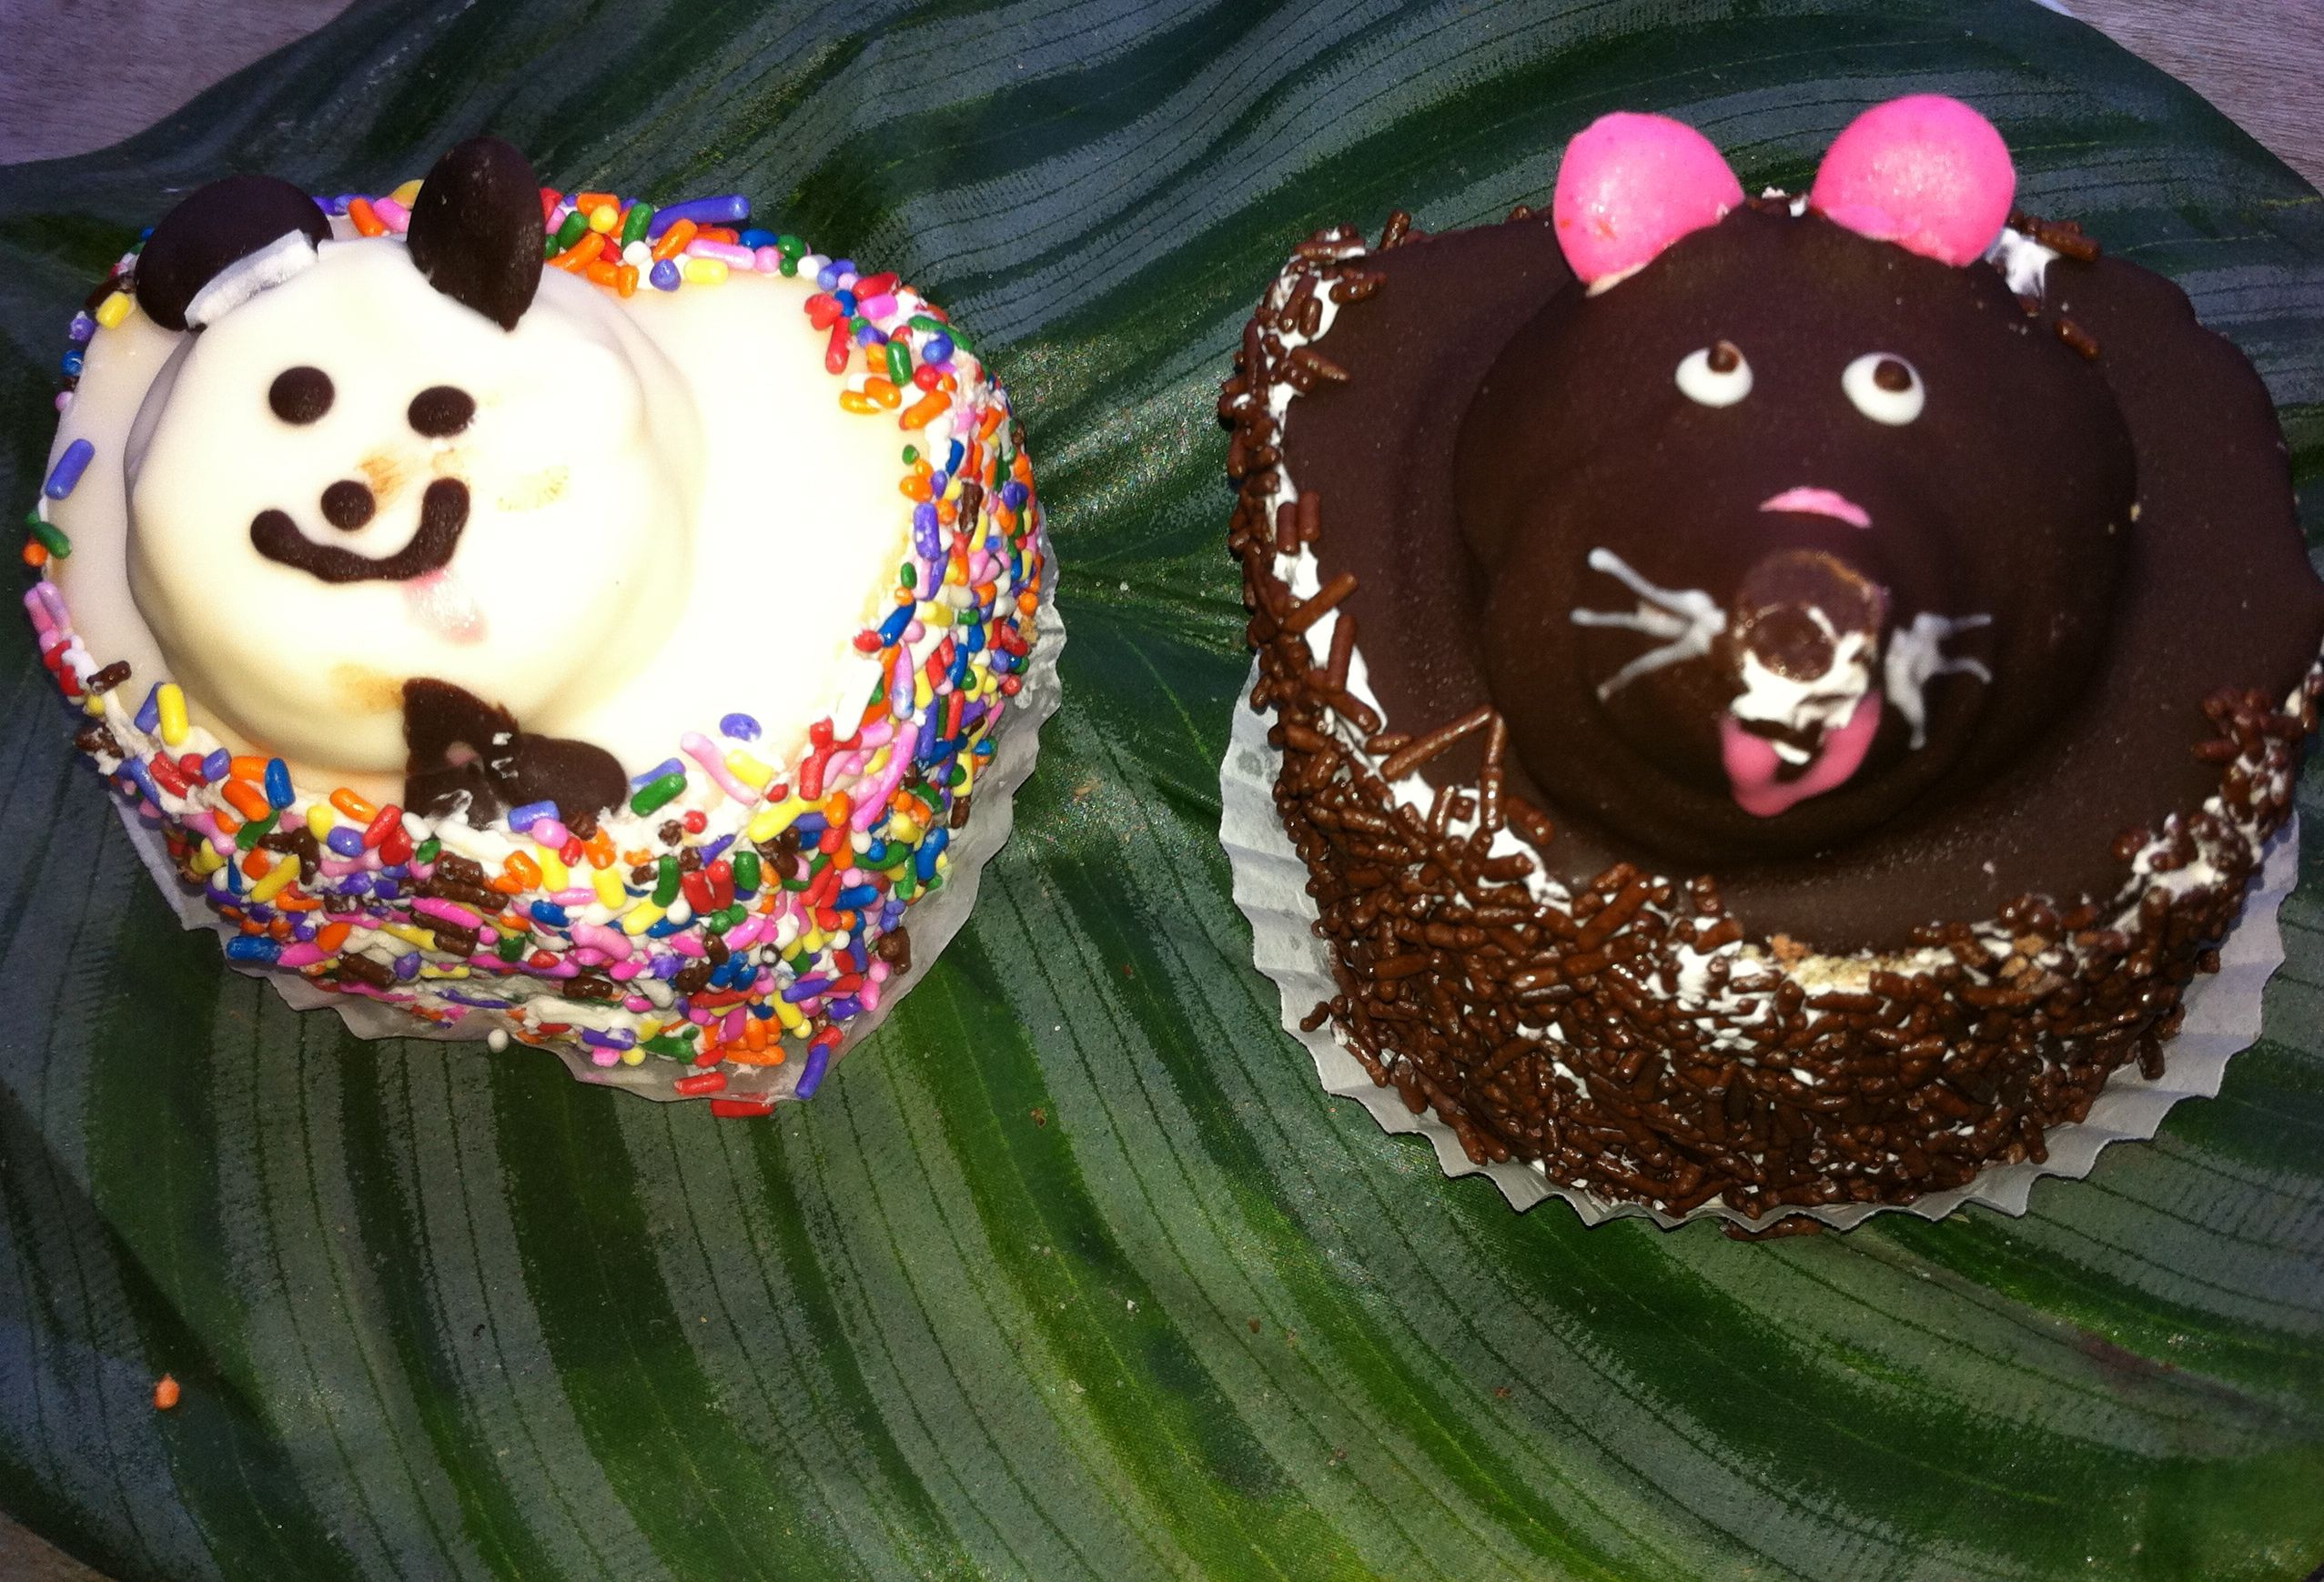 The panda and the mouse cupcakes